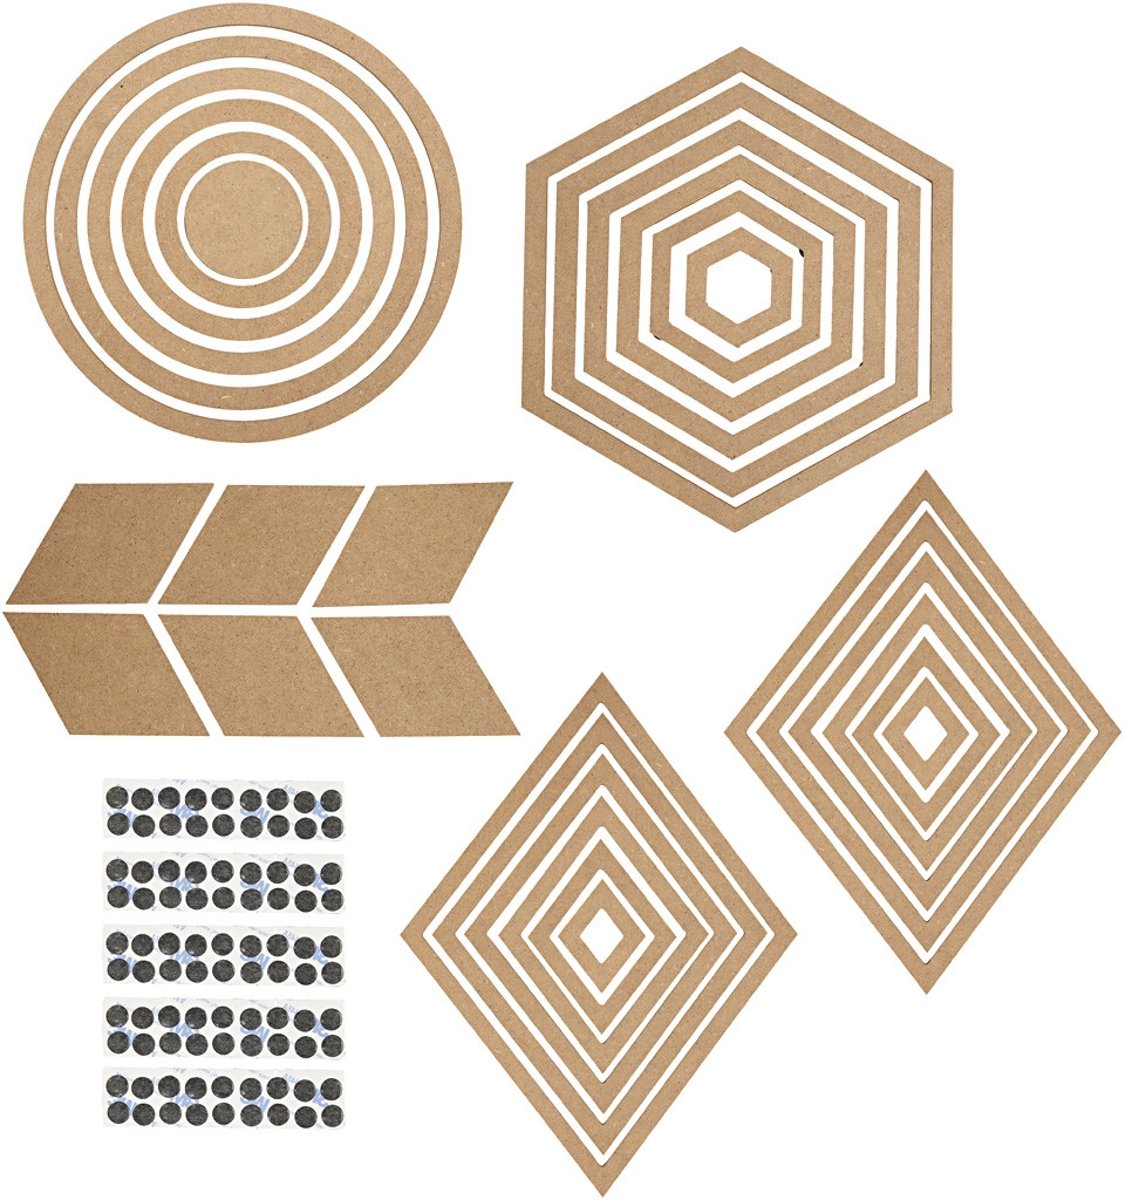 Muur decoraties, h: 5,5-29,5 cm, 10sets [HOB-56356]